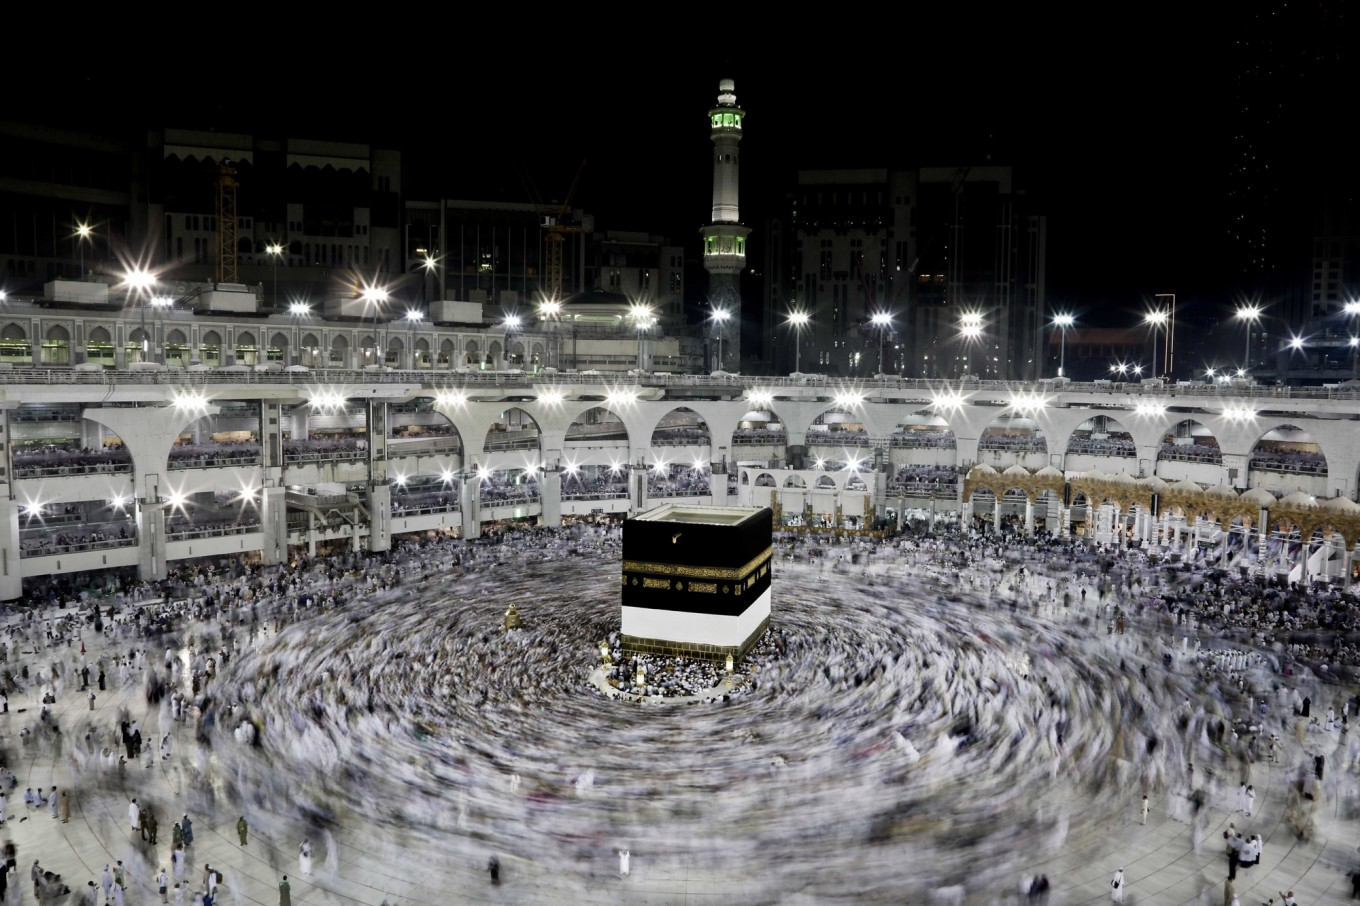 No haj funds invested in infrastructure, official says